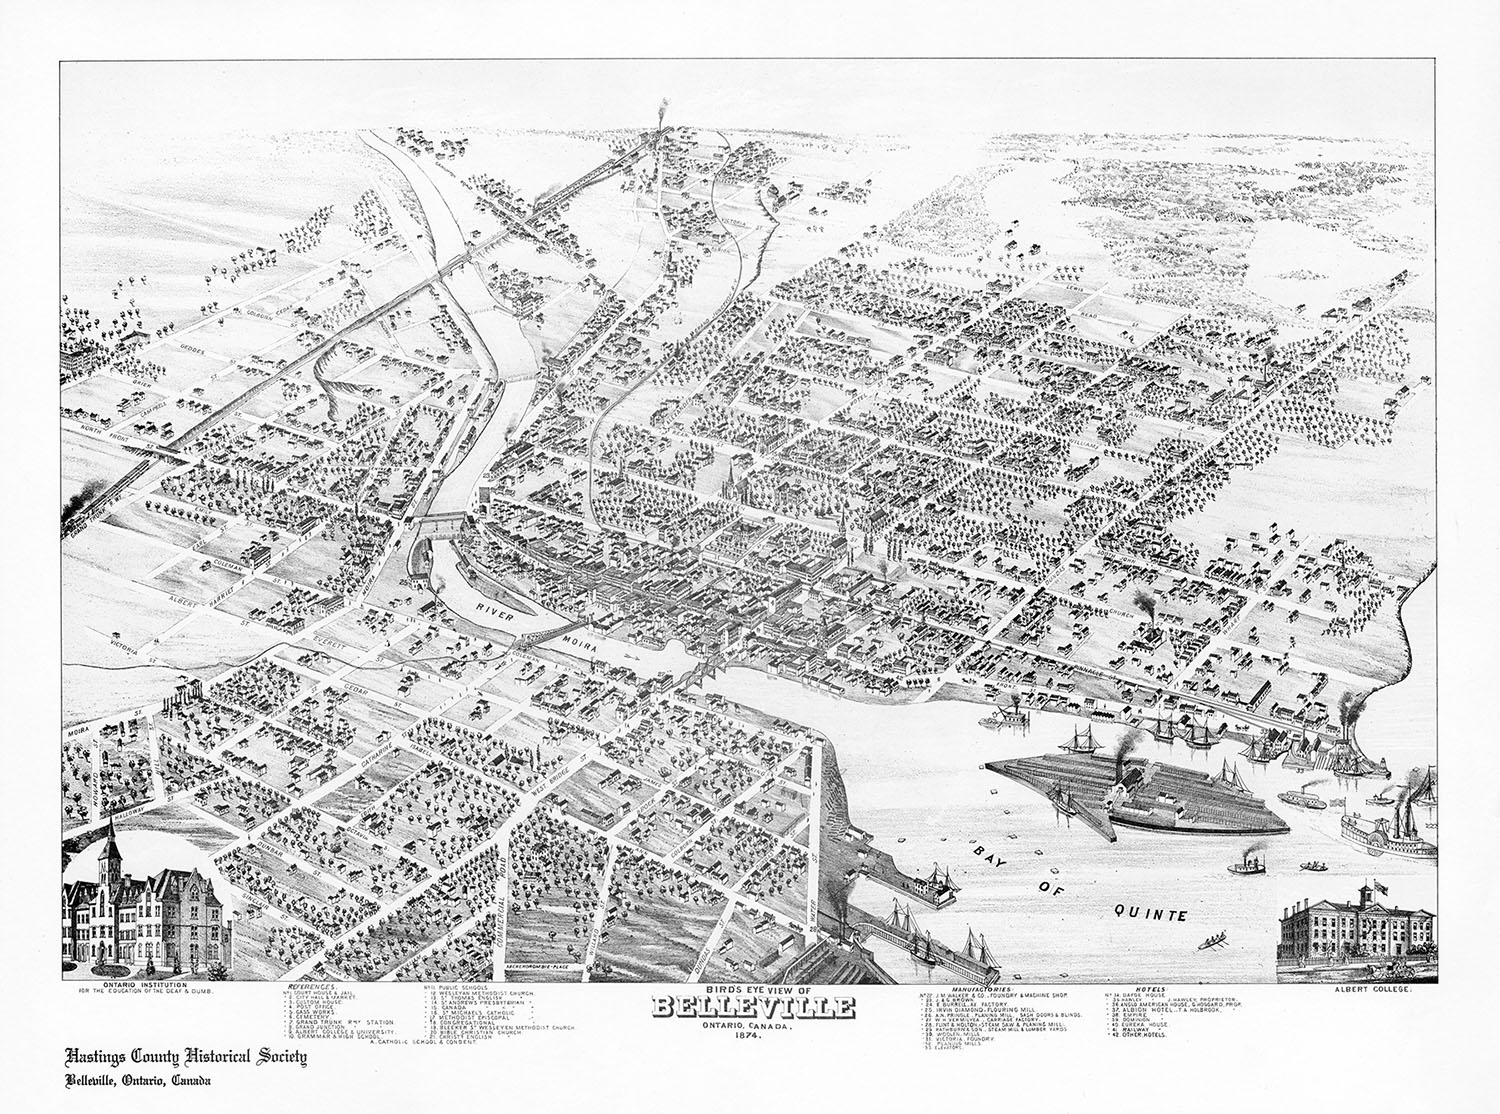 1874 map of Belleville